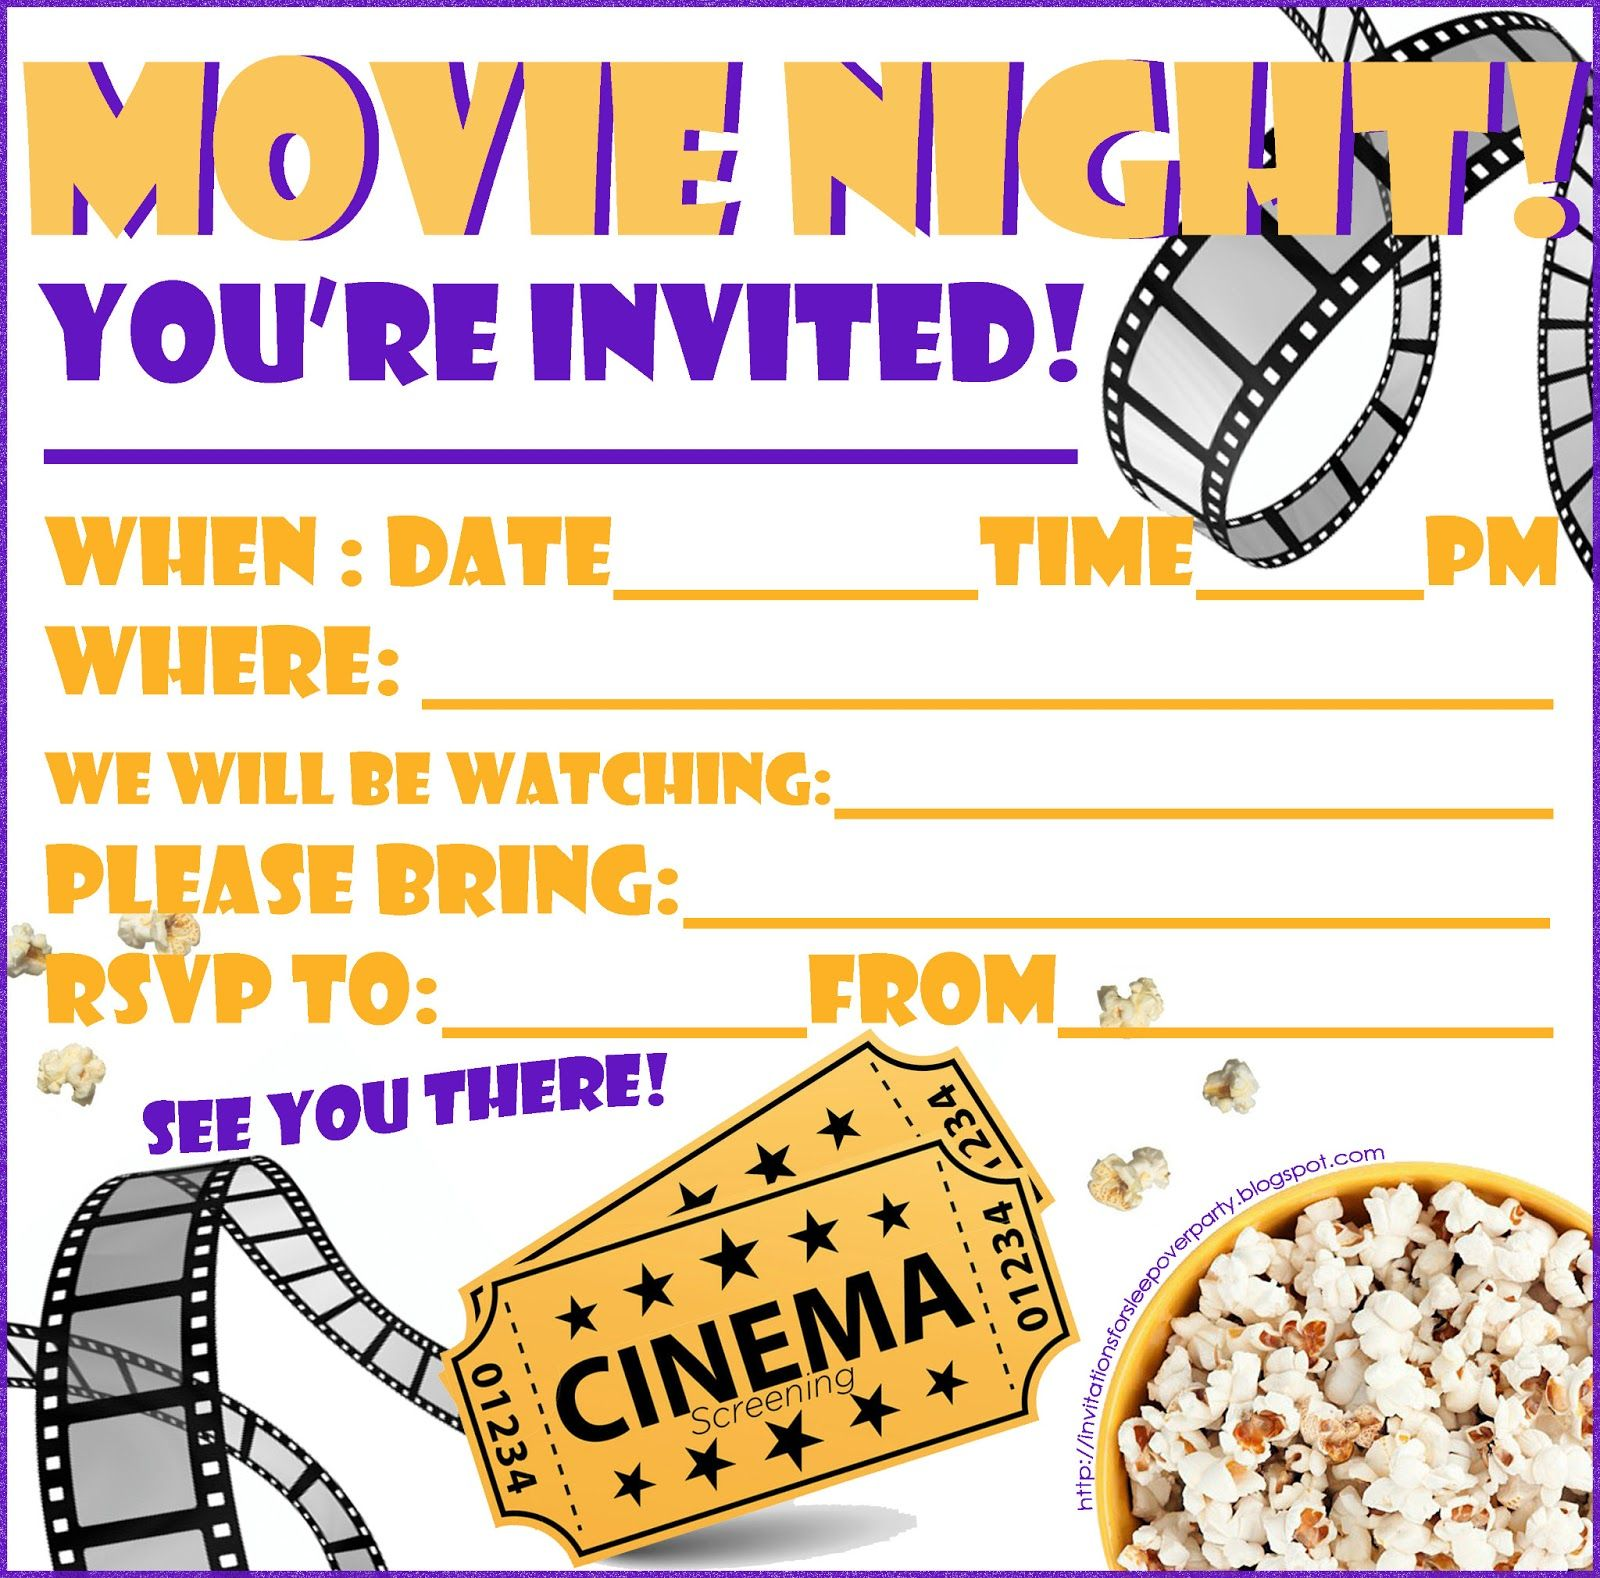 INVITATIONS FOR SLEEPOVER PARTY MOVIE NIGHT INVITATION FREE